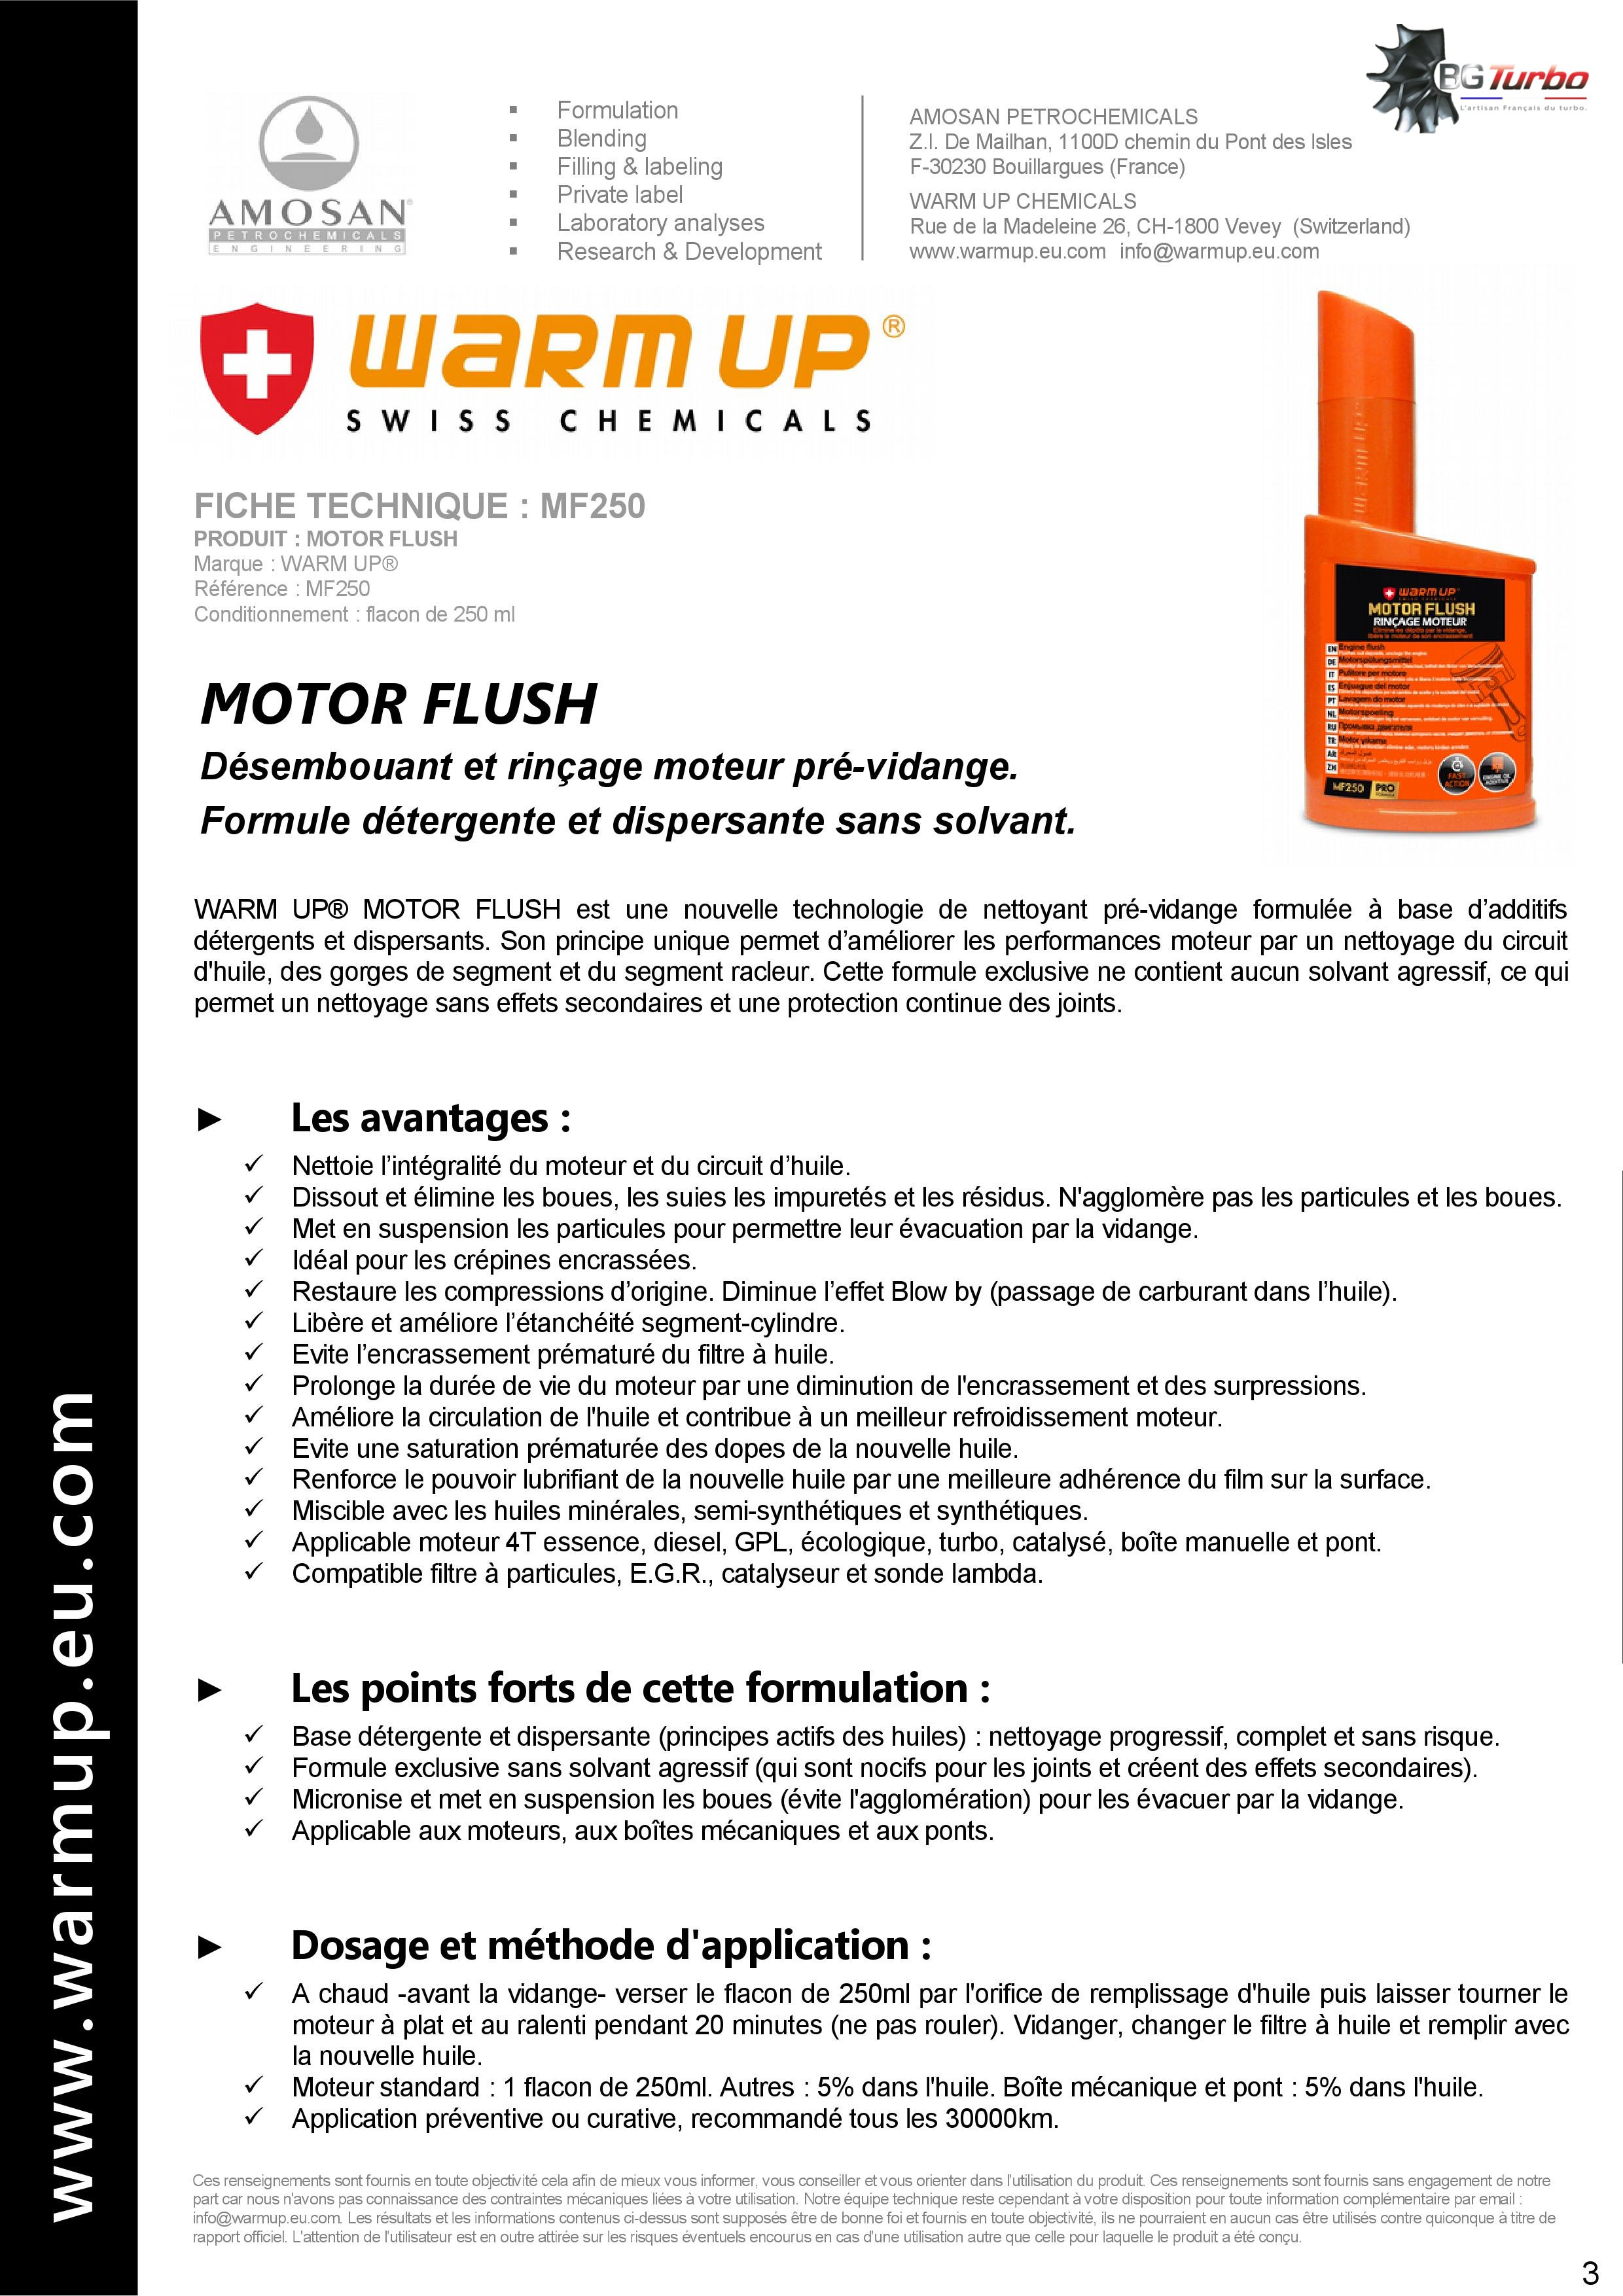 WARM UP Motor Flush 250 ml